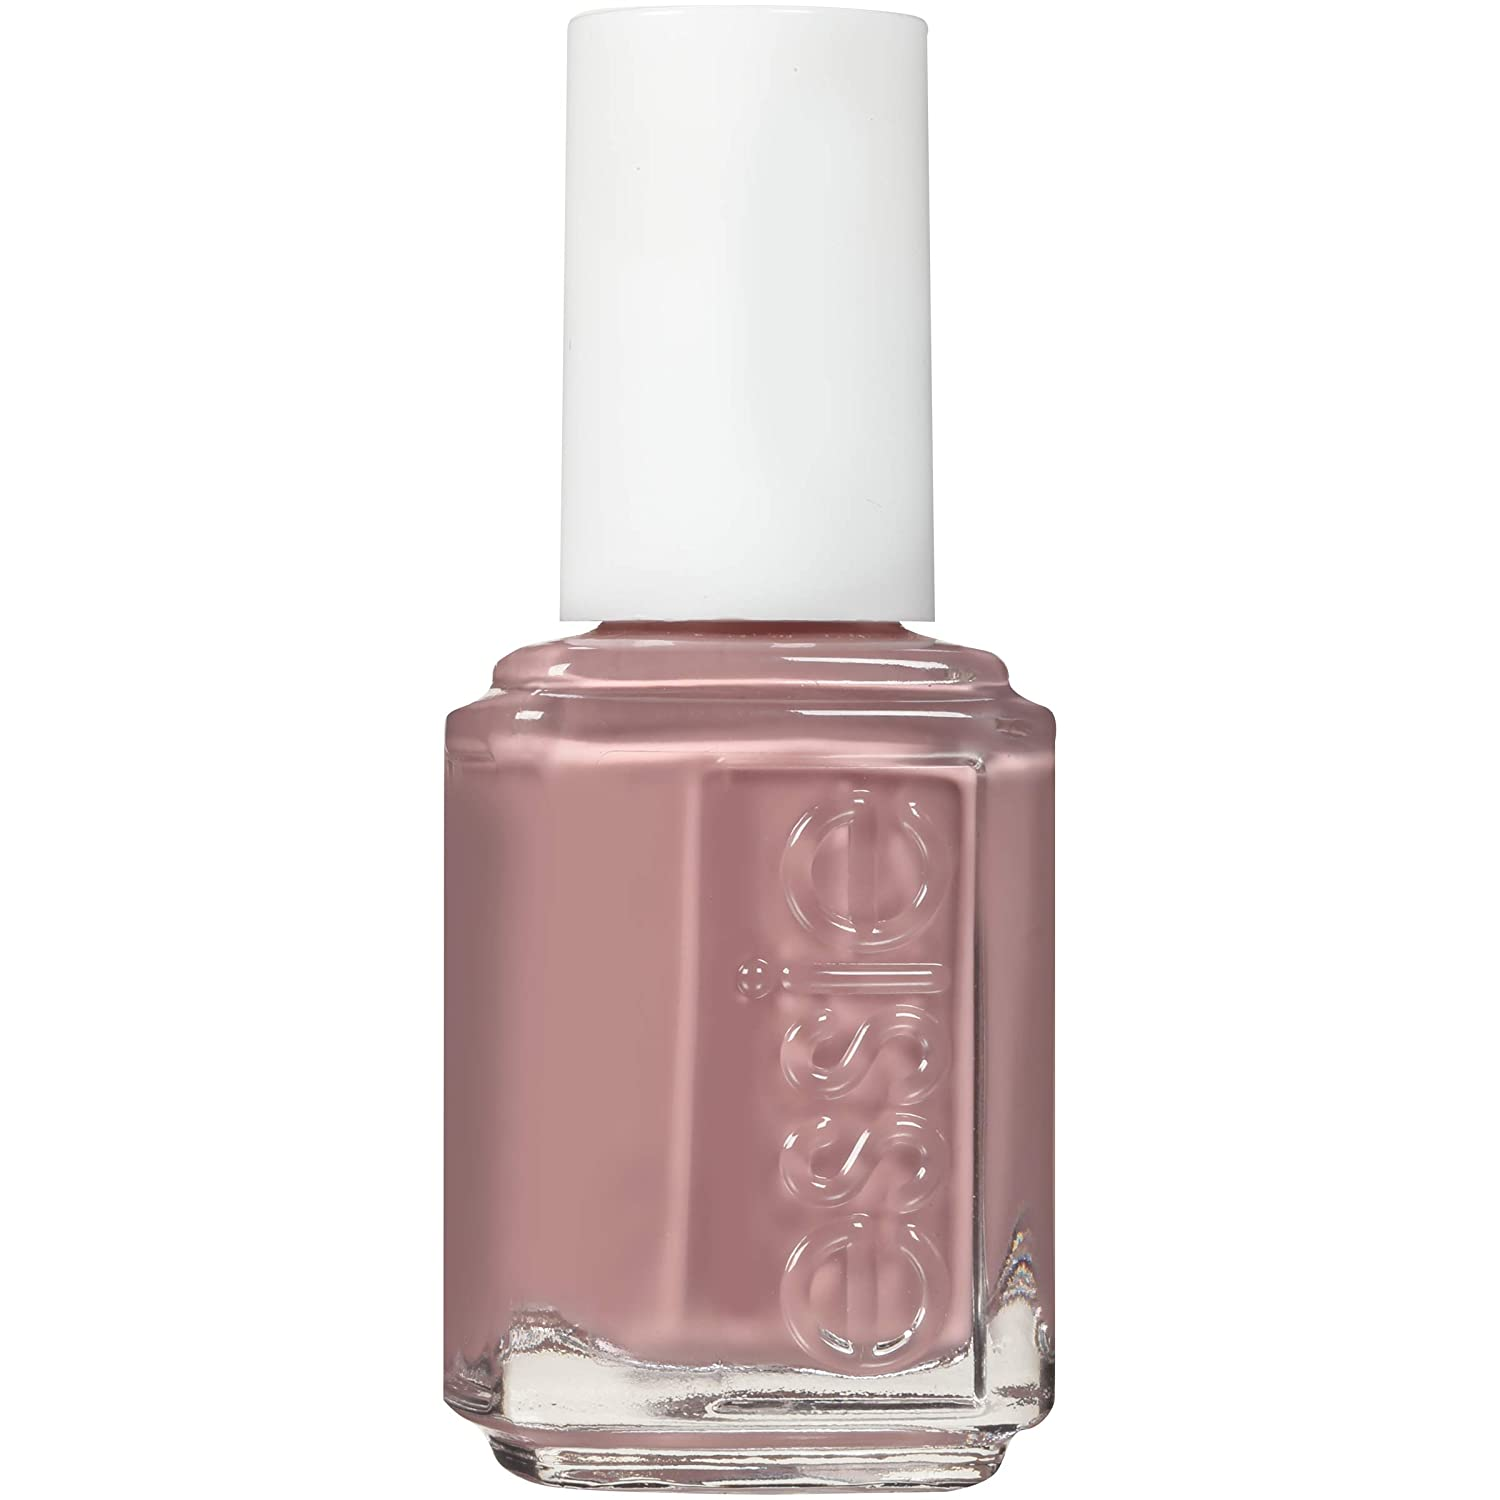 Amazon.com : Essie Nail Polish, Lady Like, Pink Mauve Nail Polish ...